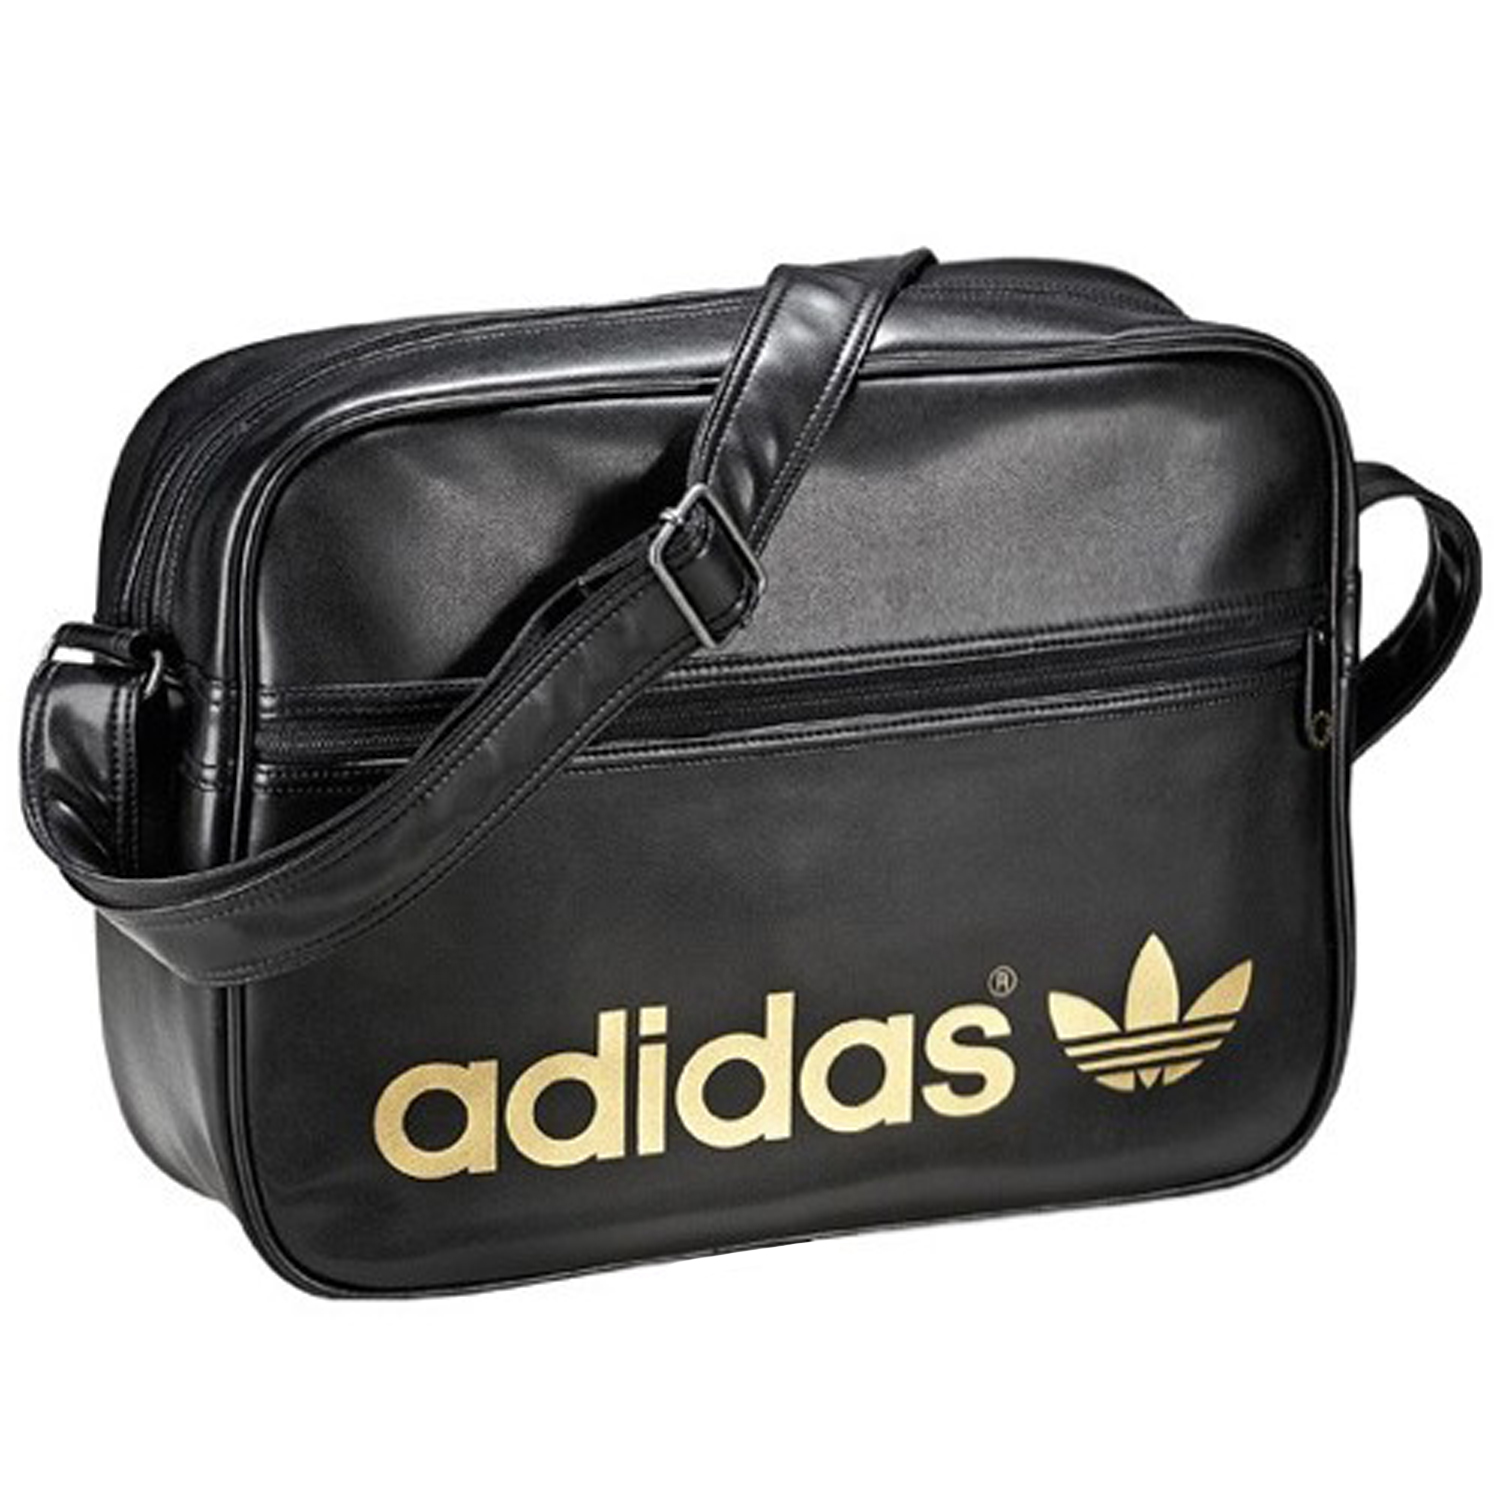 adidas leather bag